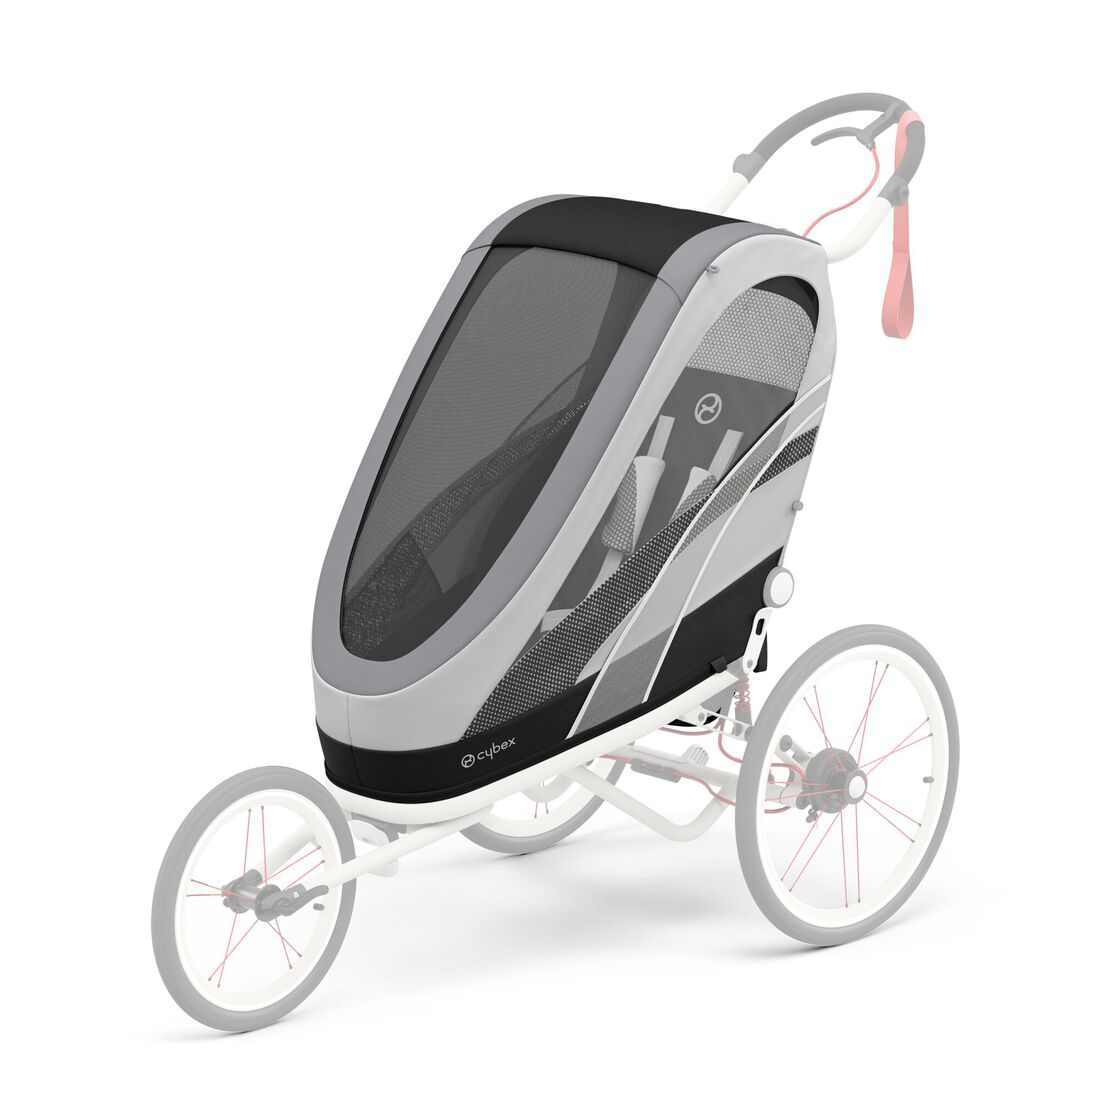 CYBEX Zeno Seat Pack - Medal Grey in Medal Grey large image number 1